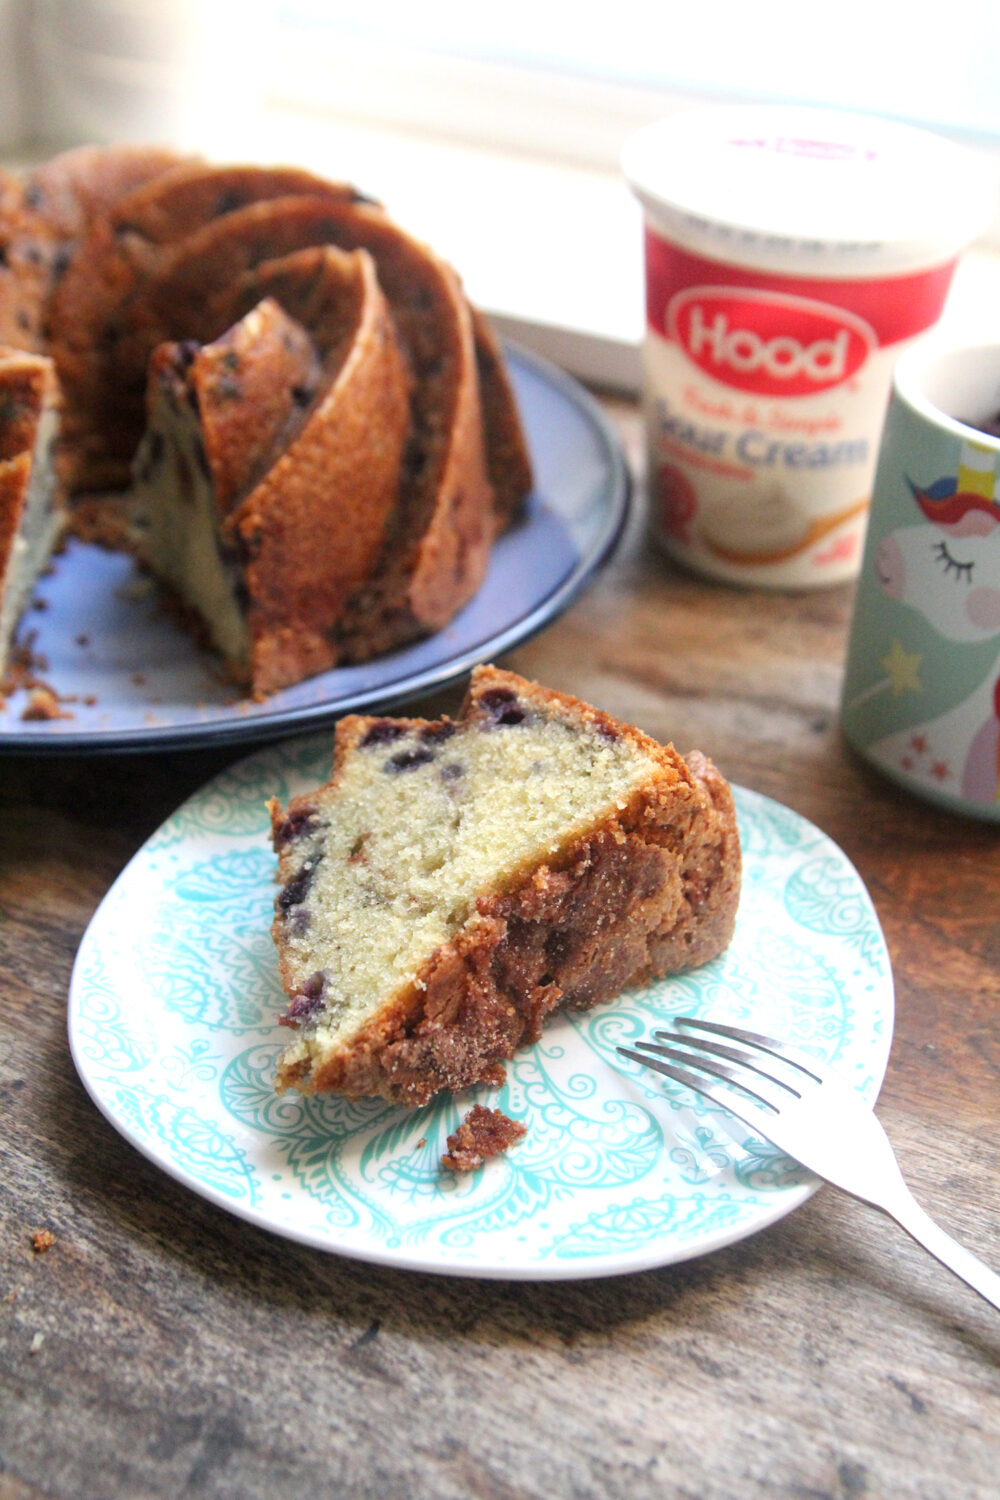 A slice of wild blueberry poundcake is on a small plate. The rest of the cake is on a big plate. Hood Sour Cream and a unicorn measuring cup sit nearby.